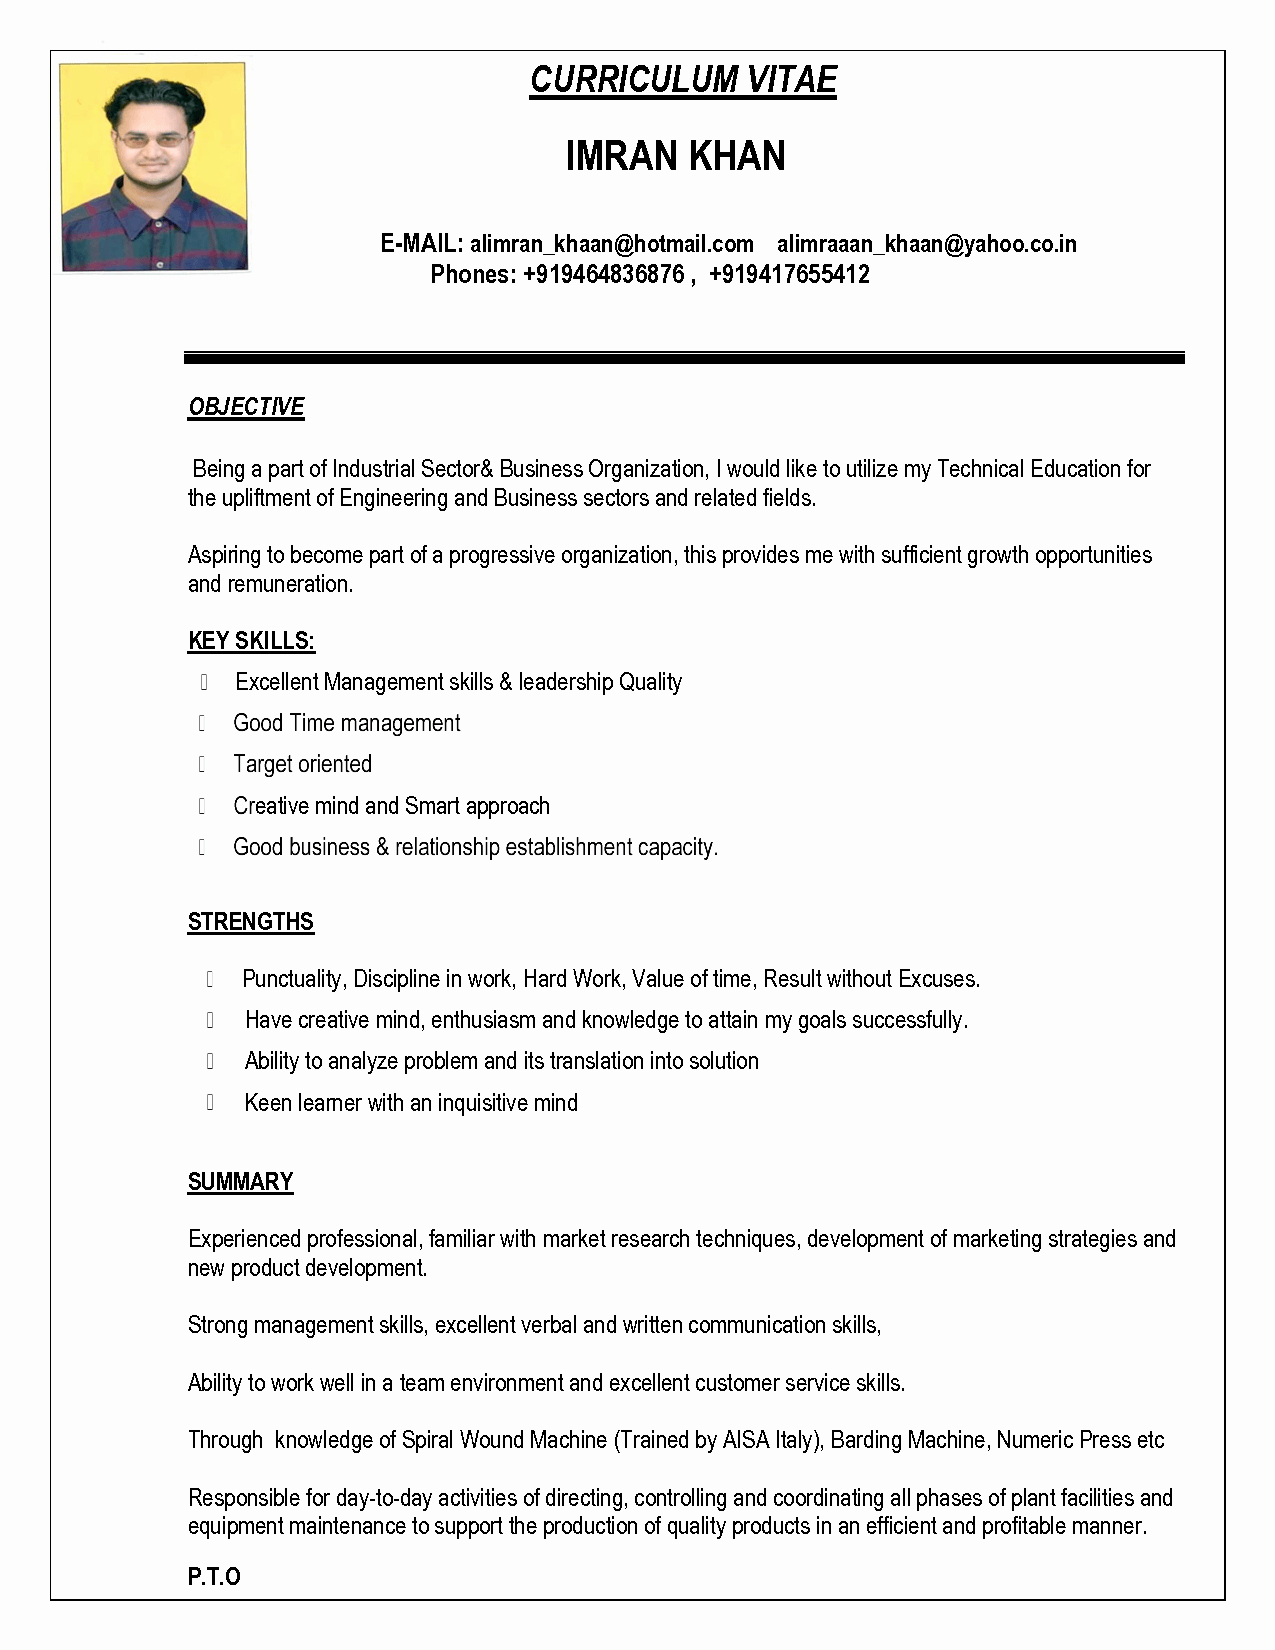 Indian Resume format In Word File Free Download Bongdaao